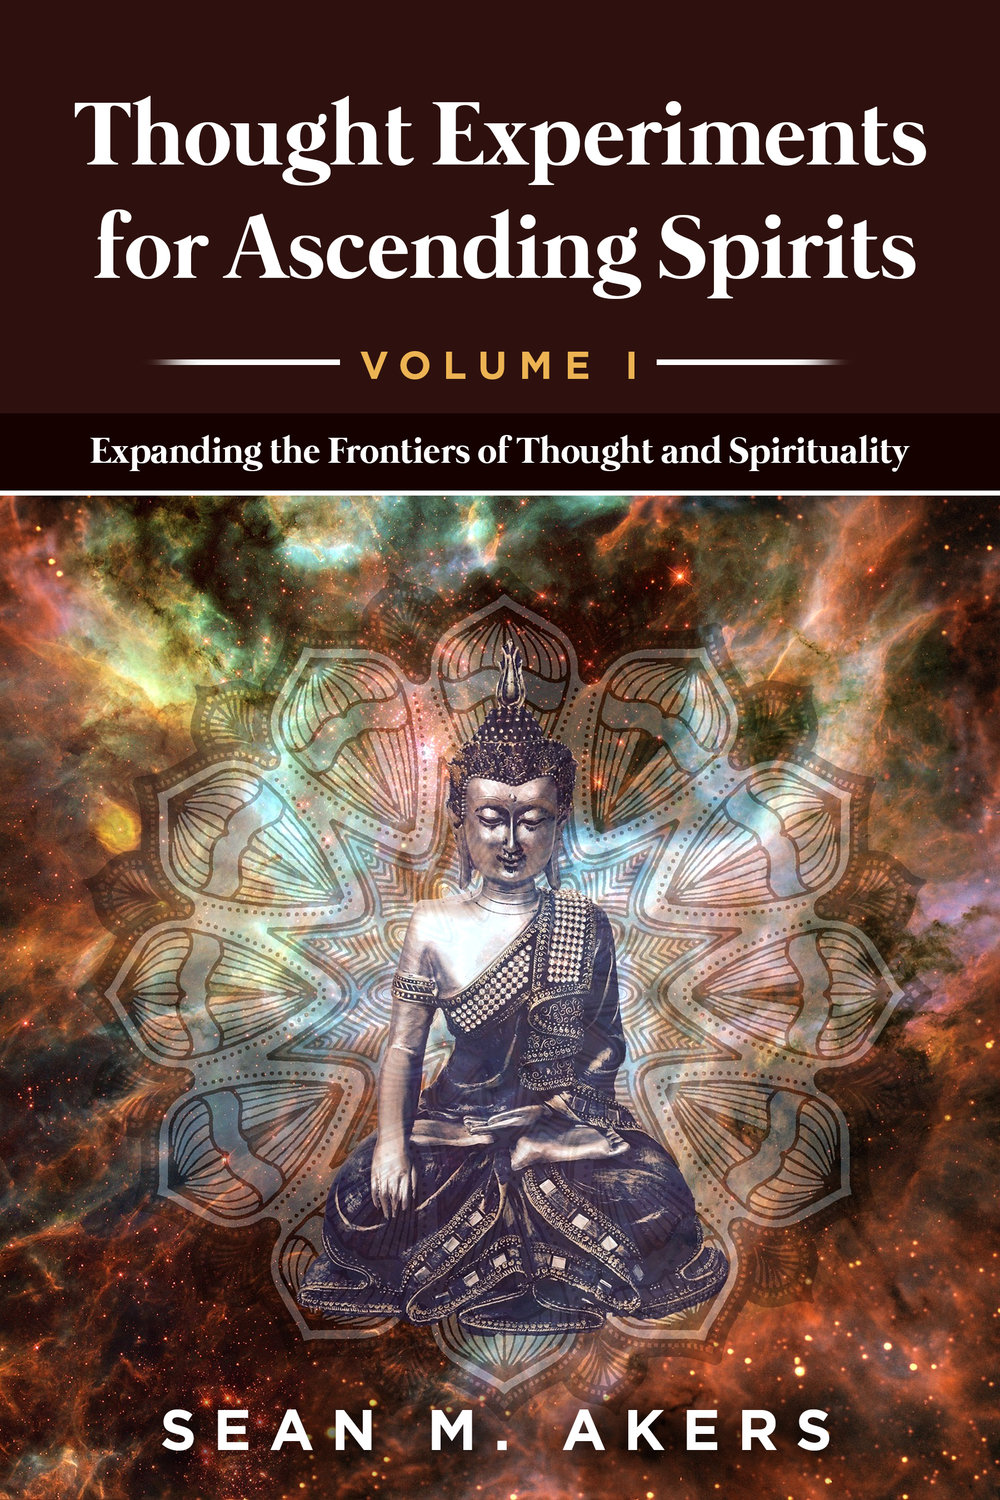 Thought Experiments for Ascending Spirits: Volume I  - is now for sale on Amazon as both an eBook and paper-back book!  Do you love reading the articles posted on The Source website and would like to own a polished copy on your hand-held device or a physical copy to put on your shelf and share with others?  Do you want to see more thought experiments and essays created and then thoughtfully compiled for you, the reader?Support the author by exchanging value-for-value with this debut compilation of thought experiments. Thought experiments in this book can be found within the Elevation Articles page, and have been organized in a specific order to lay a foundation and then build up to more complex ideas about spirituality.The eBook and hard copy versions can be found on Amazon for the following prices by clicking the links below:eBook price is $2.99Paper-back book is $6.99To proceed to new and previously published essays, please click on Elevation Articles.